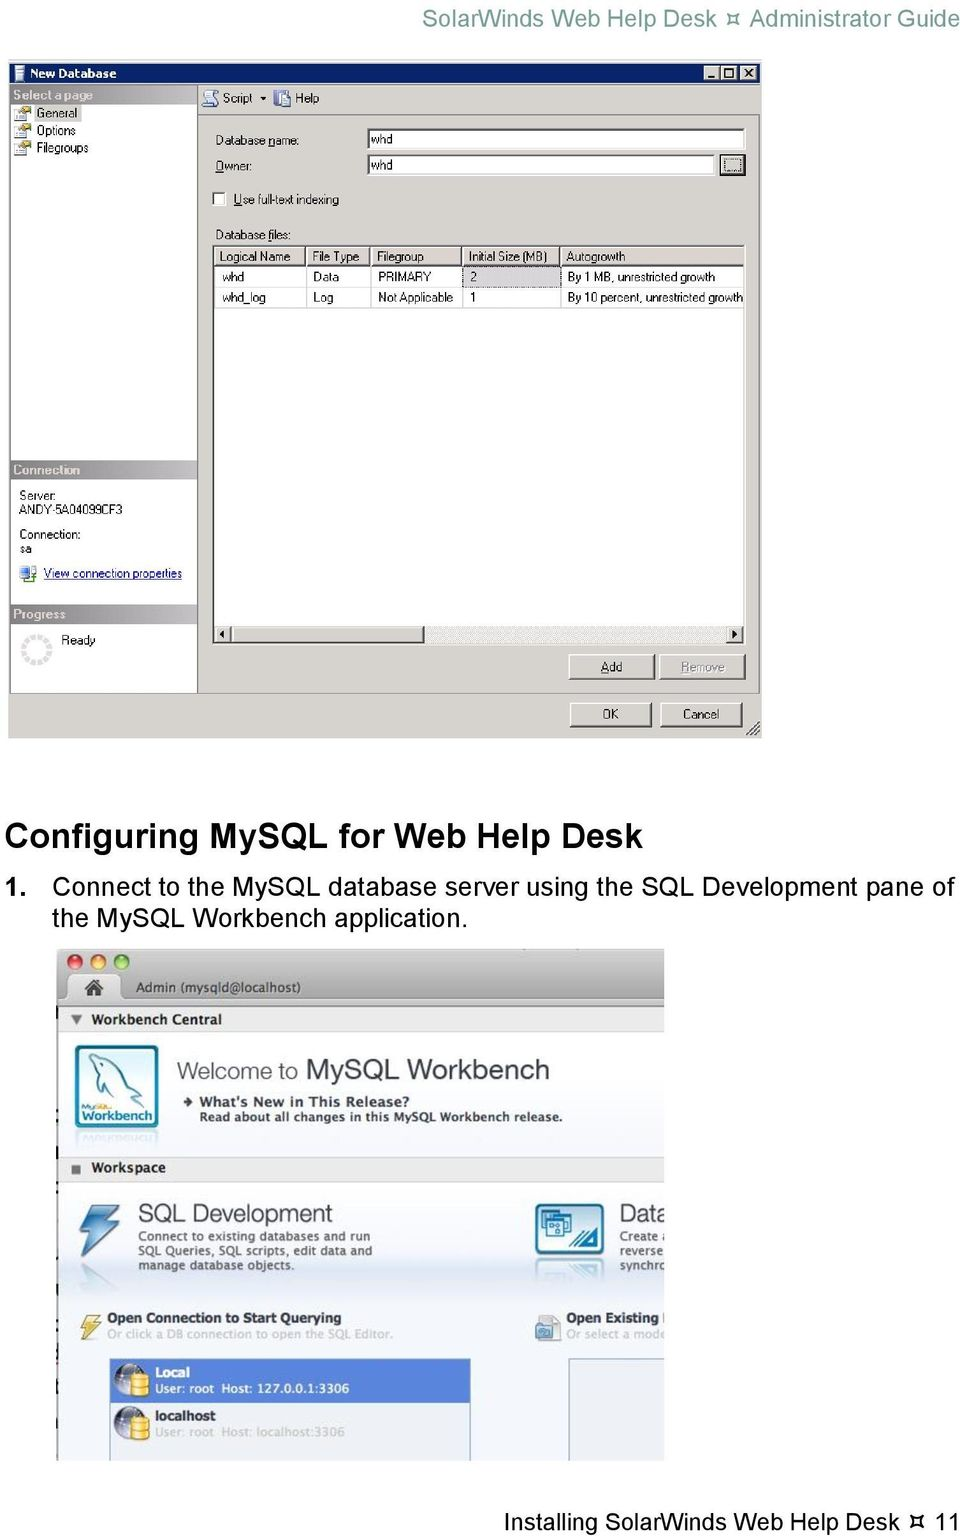 Solarwinds web help desk administrator guide pdf connect to the mysql database server using the sql kristyandbryce Choice Image